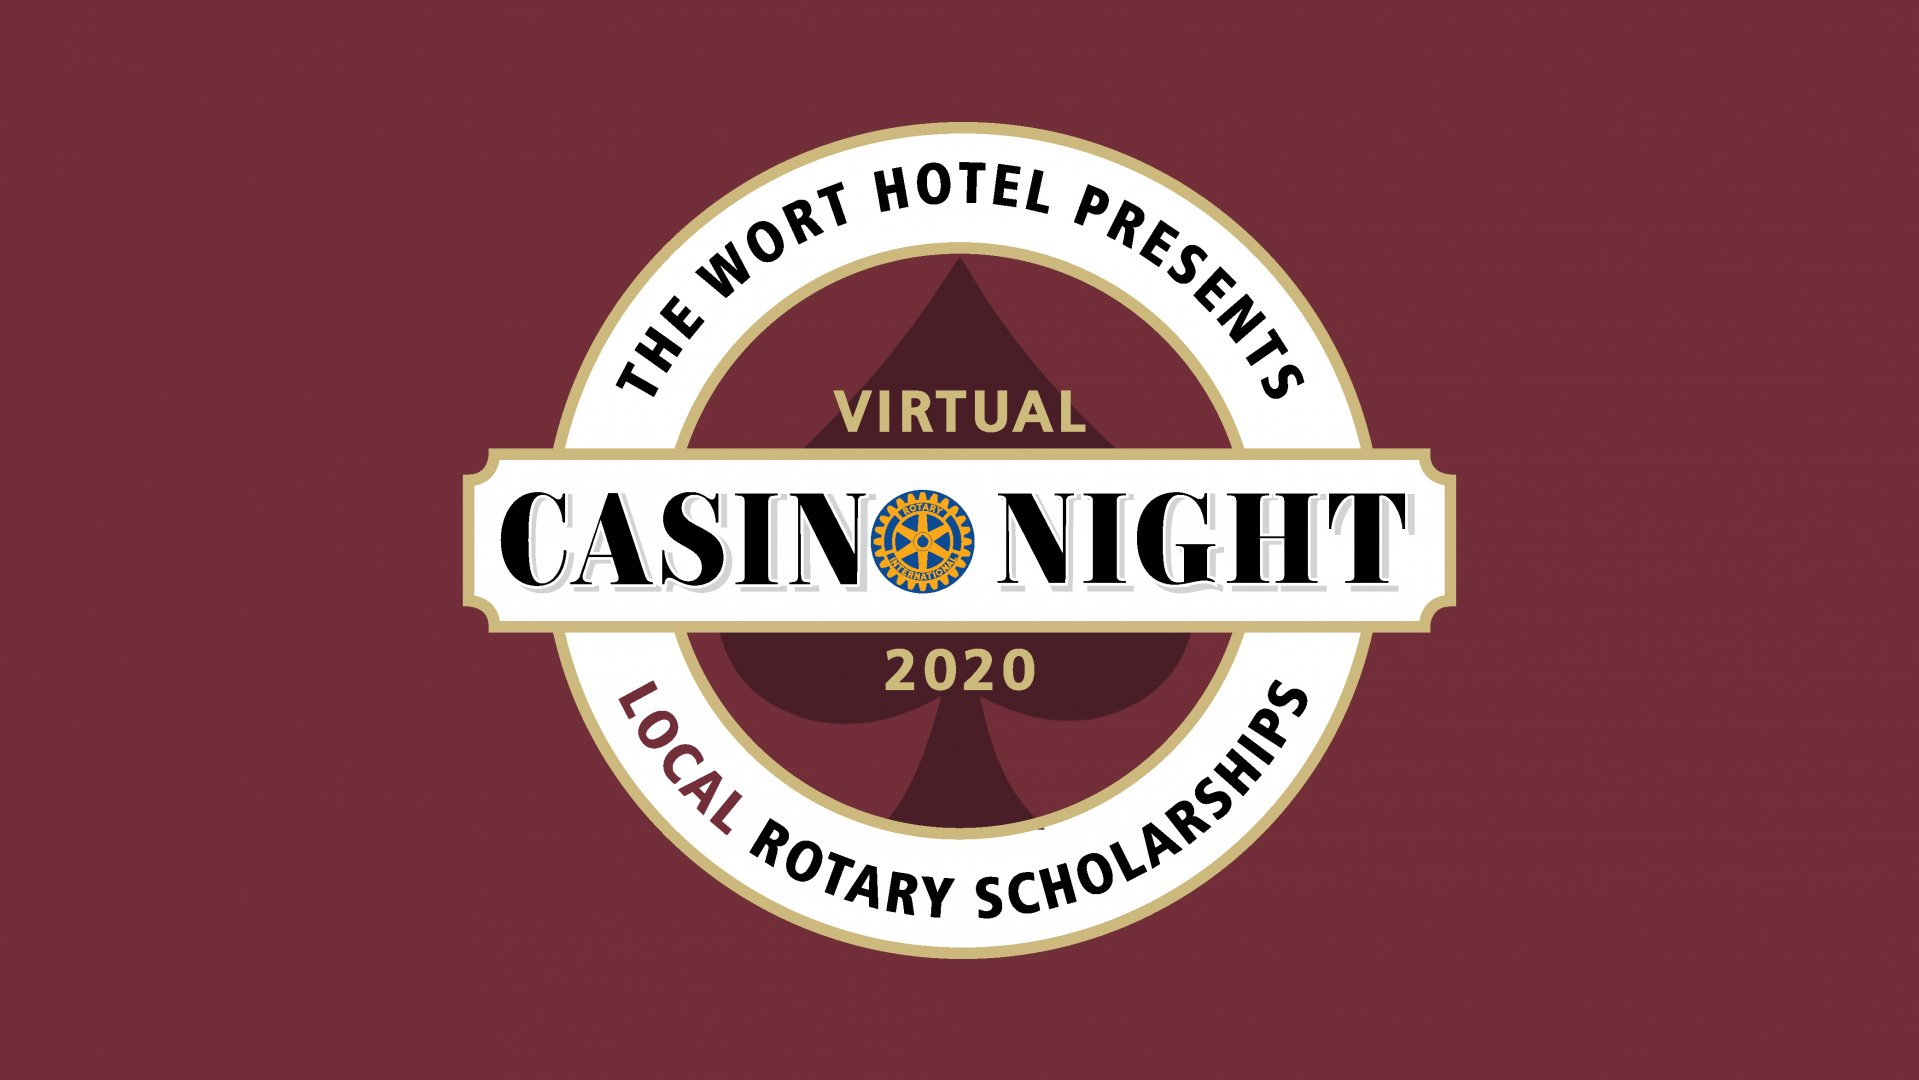 Virtual Casino Night 2020